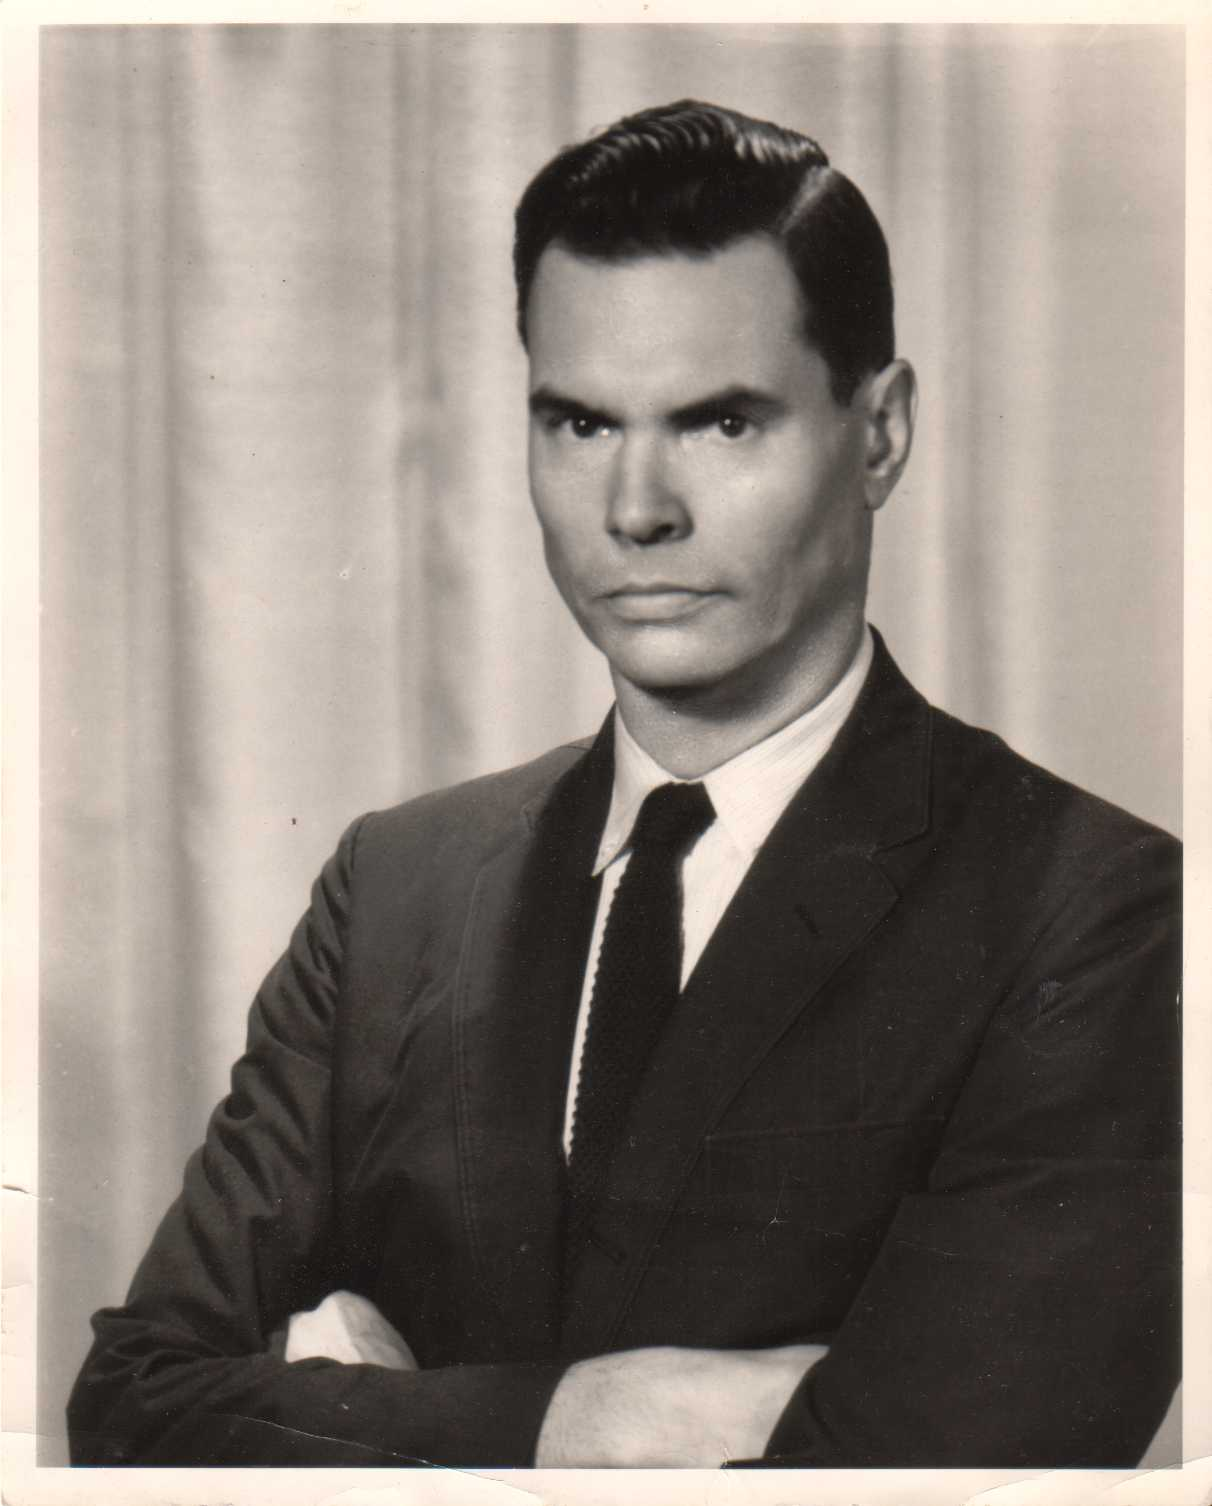 Commander George Lincoln Rockwell